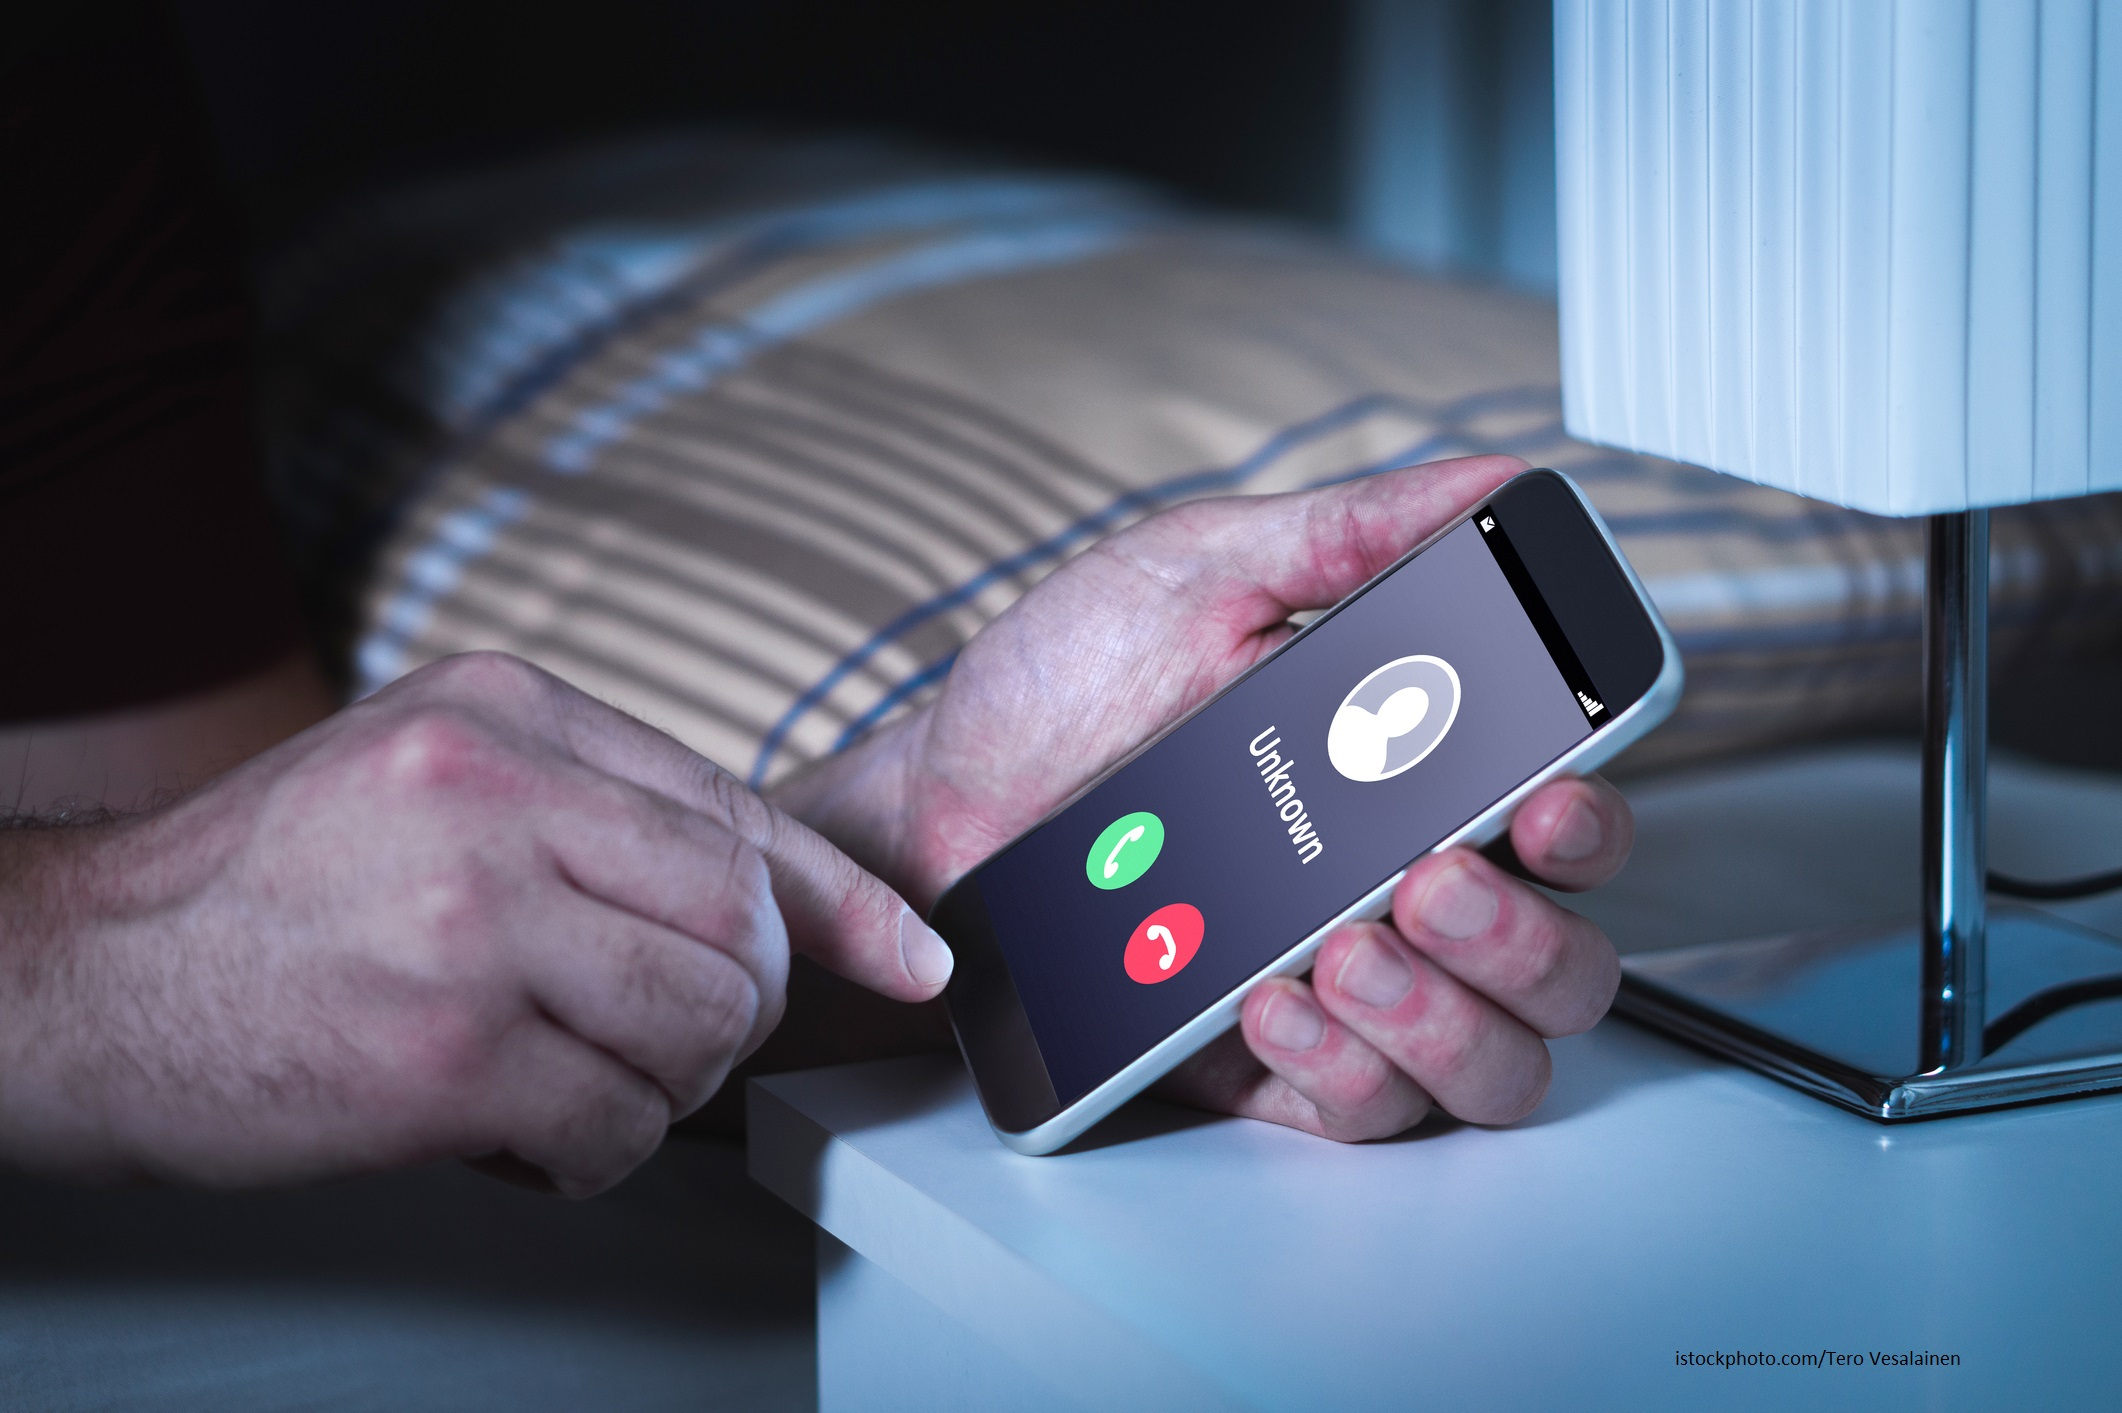 Unknown number calling in the middle of the night. Phone call from stranger. Person holding mobile and smartphone in bedroom bed home late.